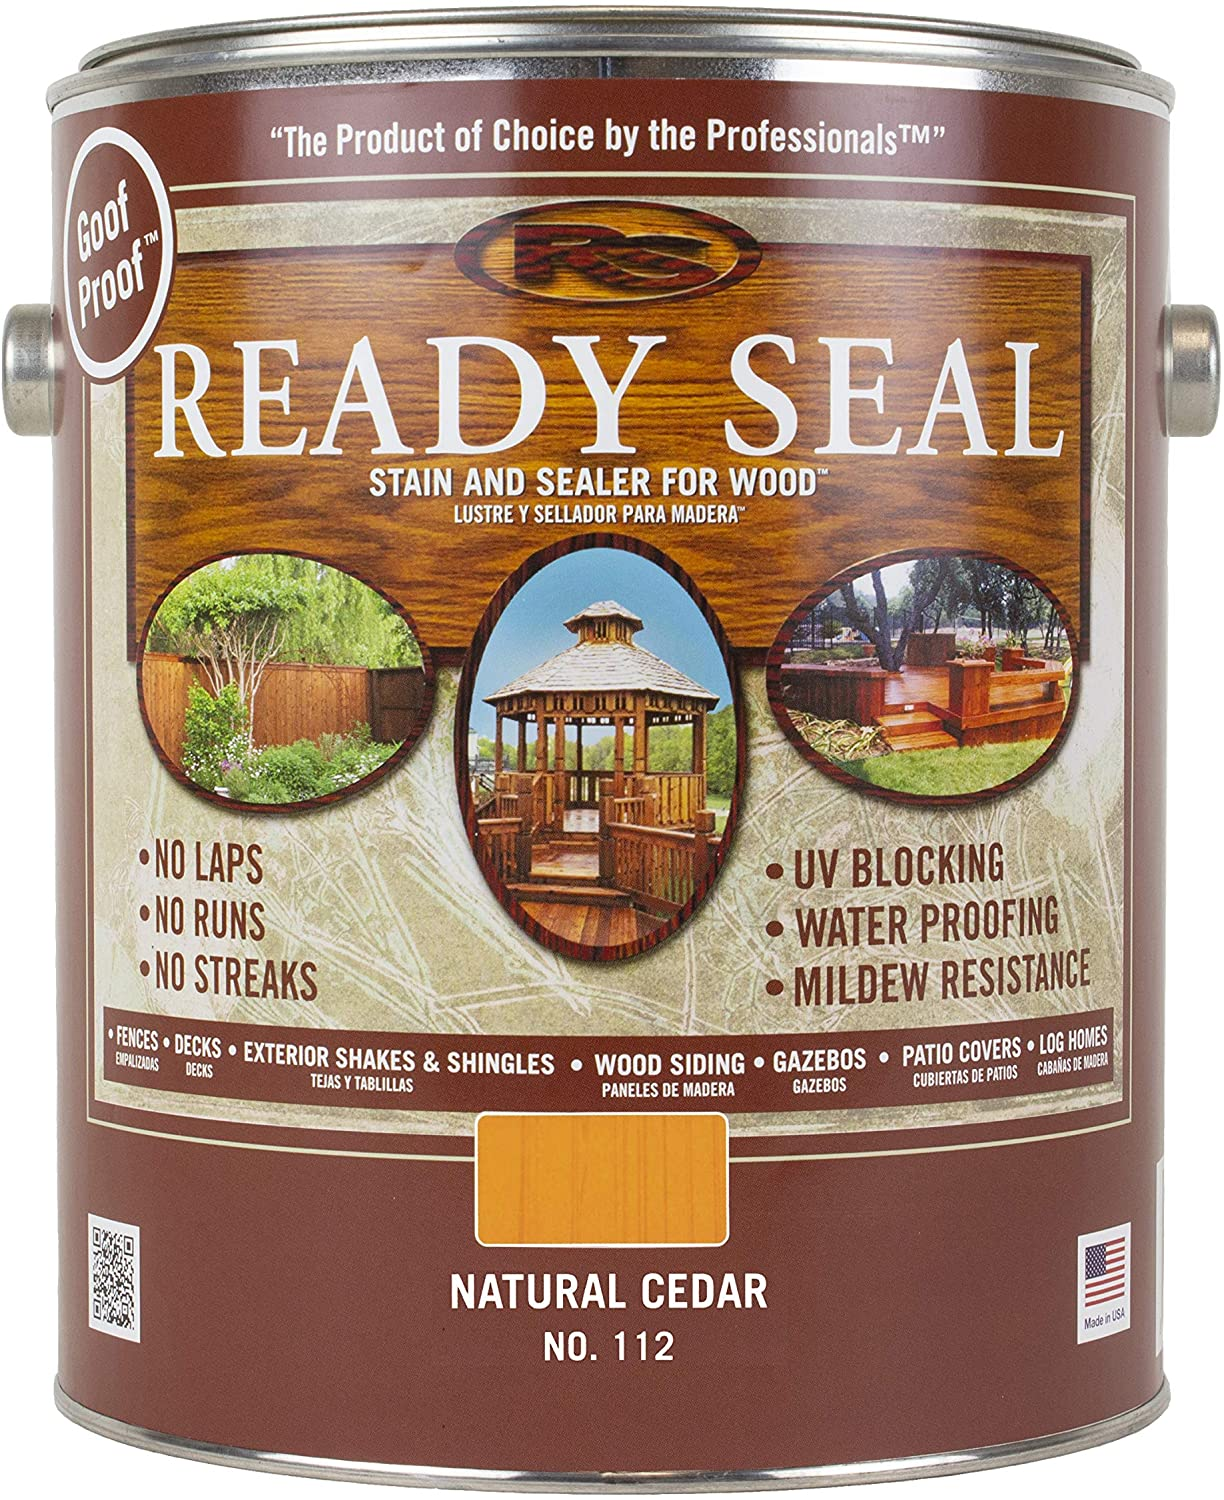 Ready Seal 112 review